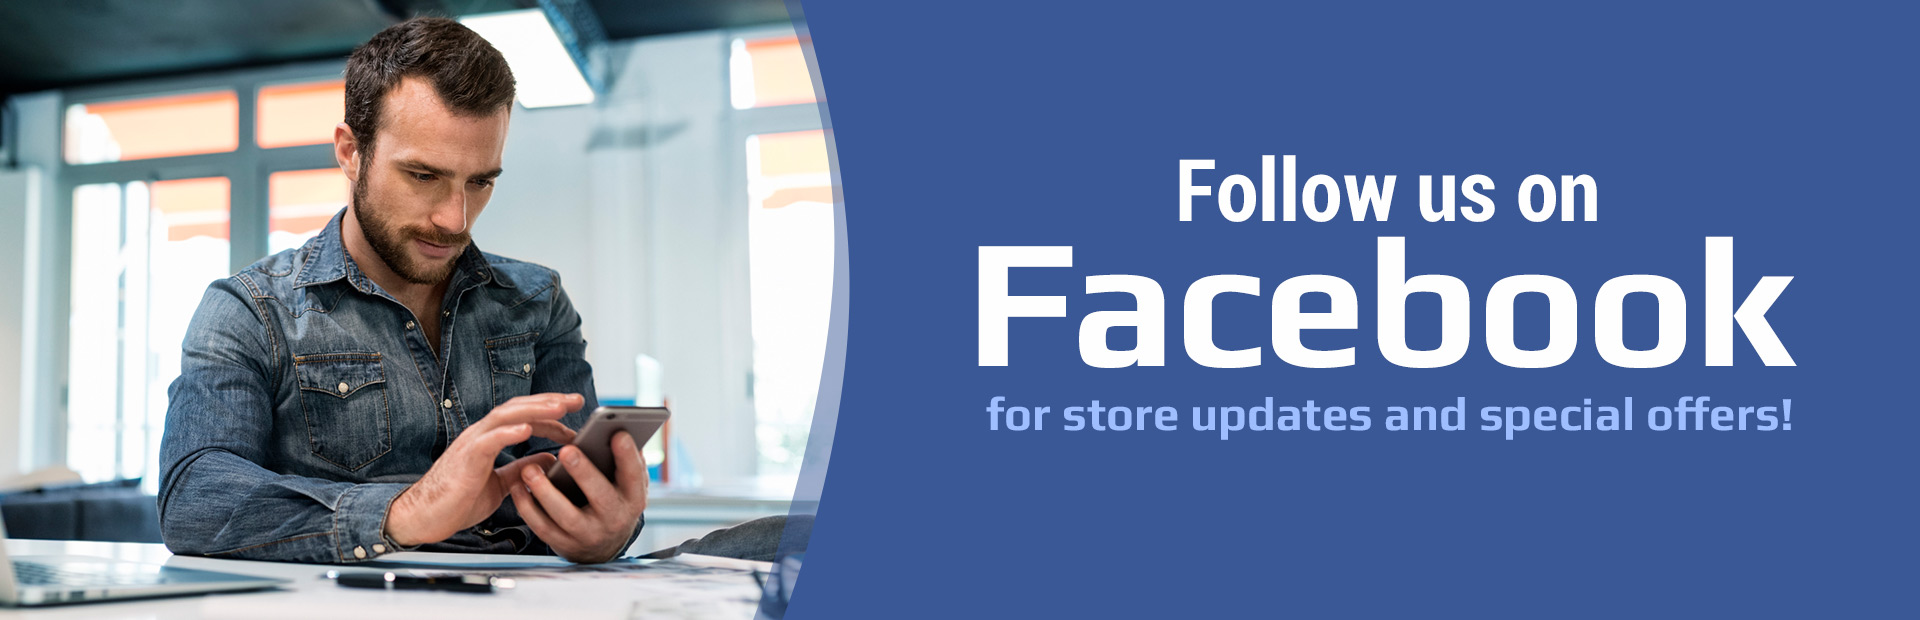 Follow us on Facebook for store updates and special offers!